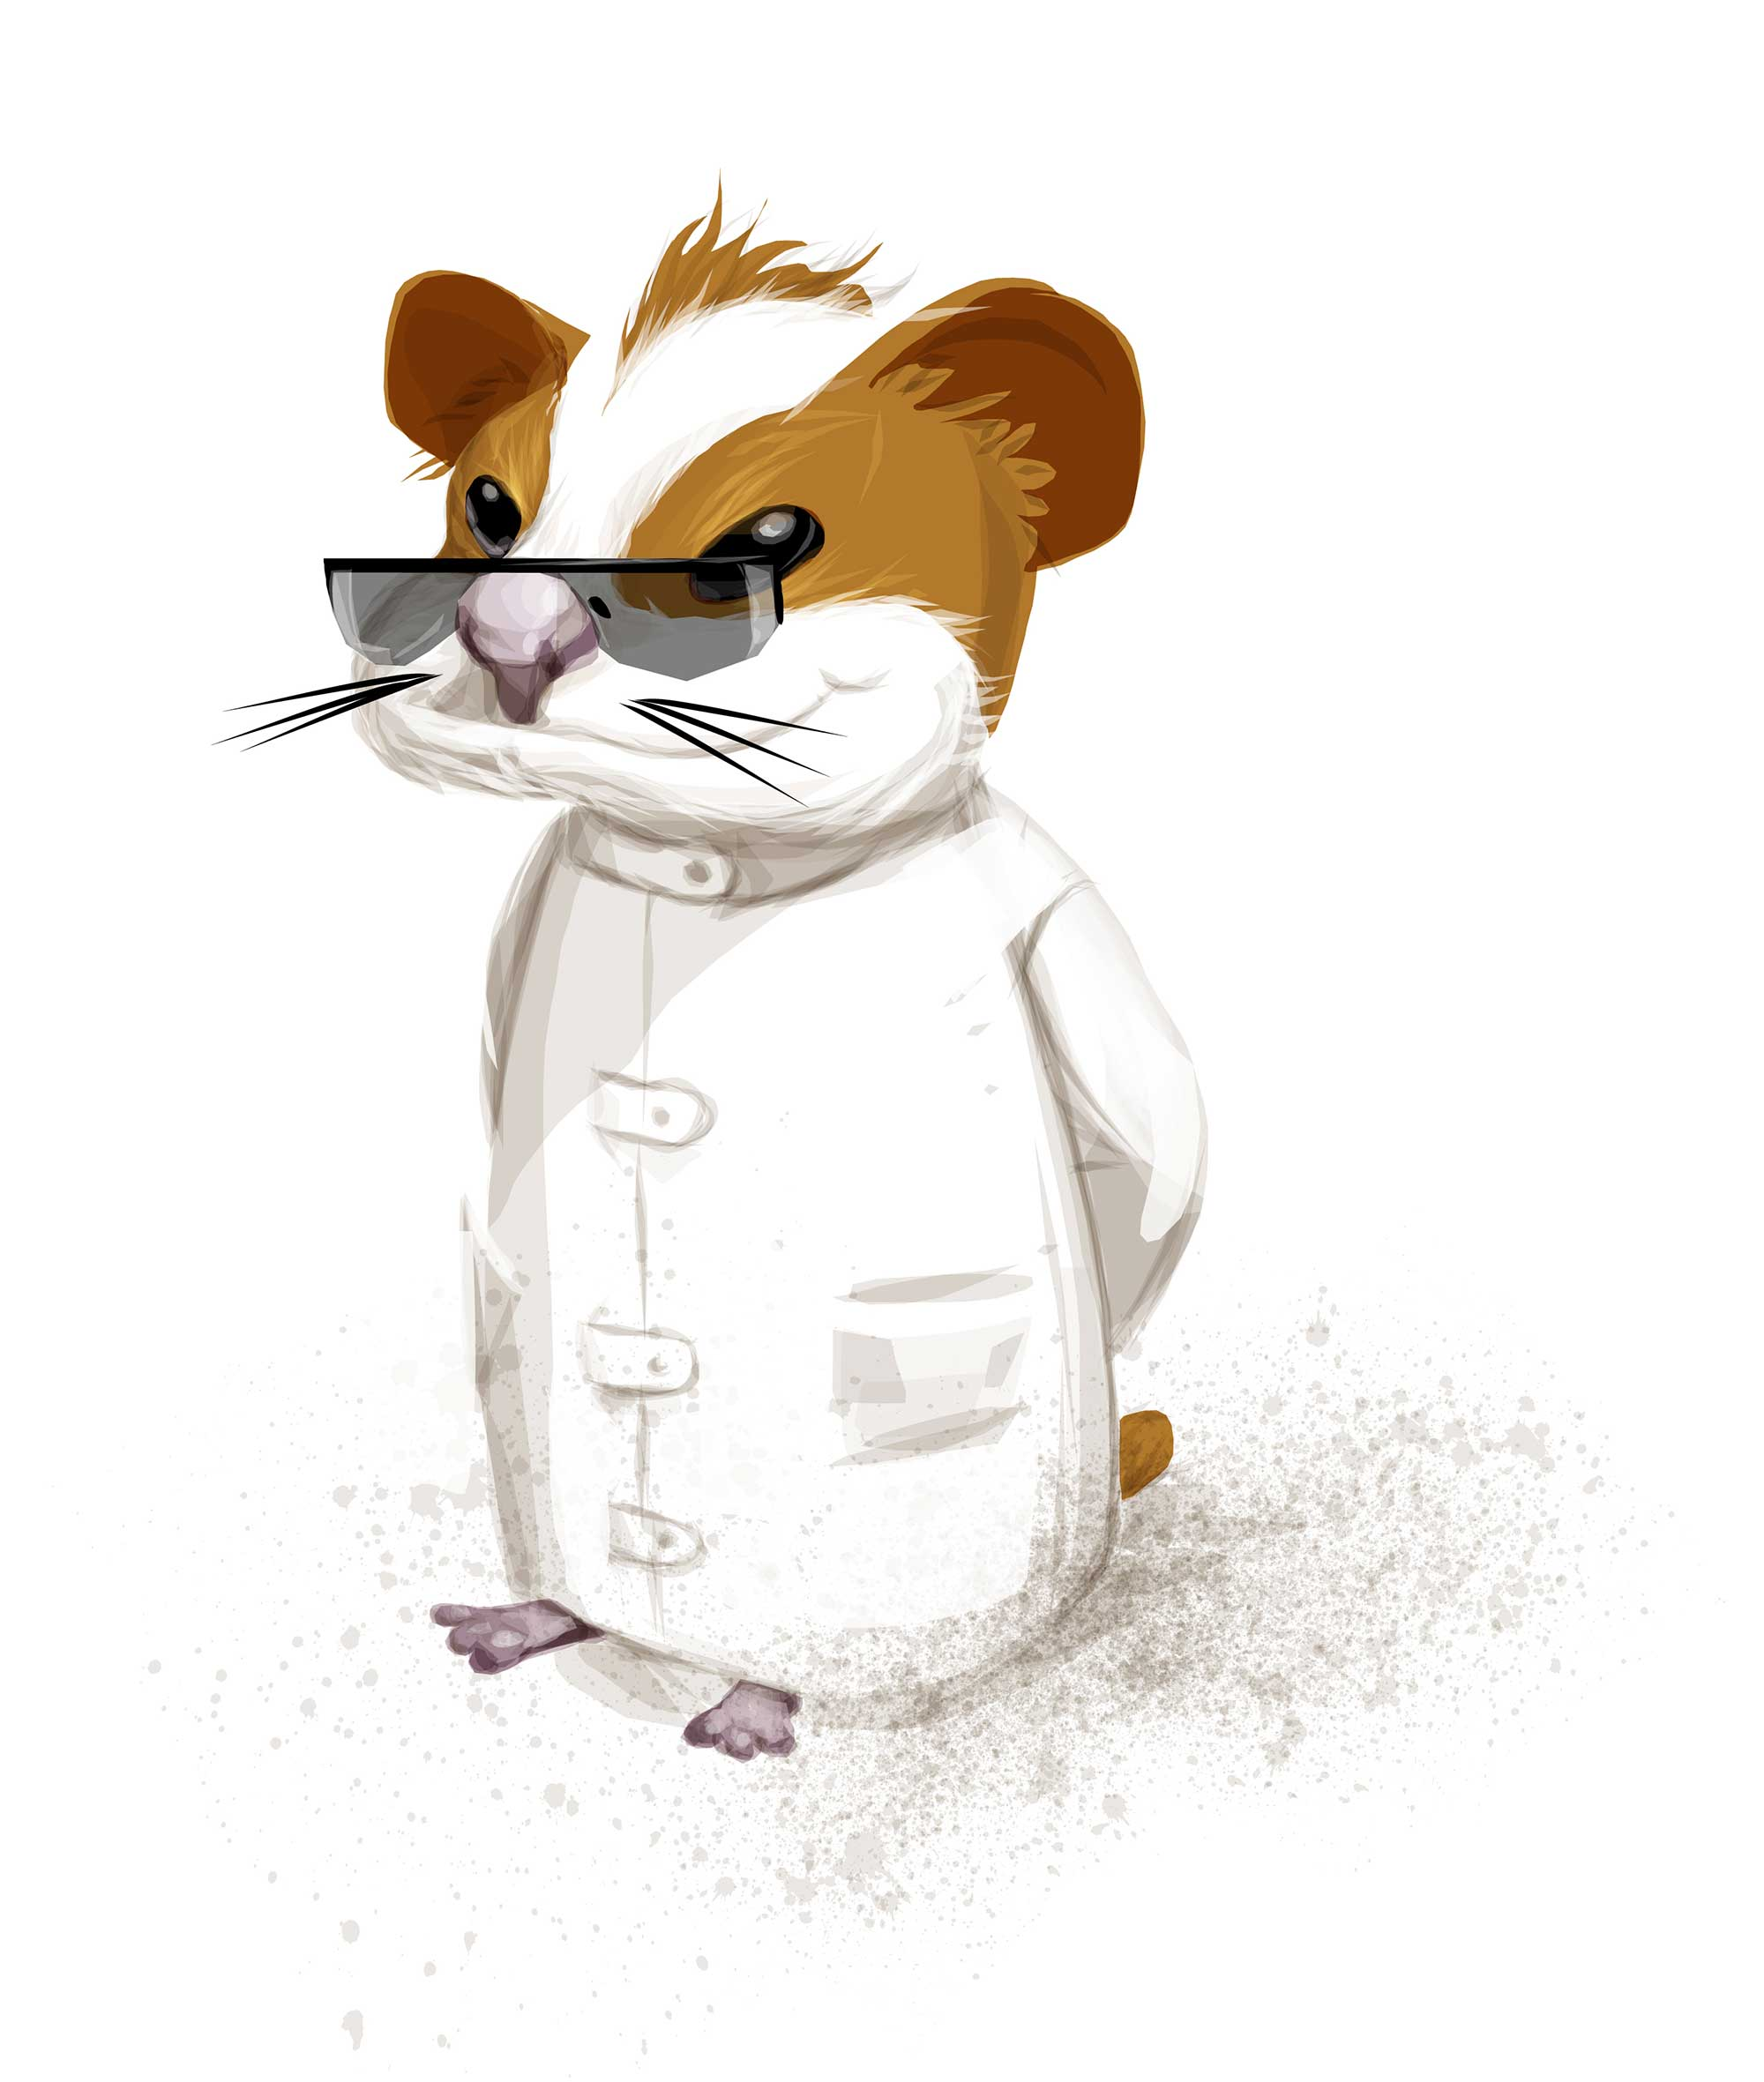 Wits and Warfare Geek Hamster Intelligence Concept Character